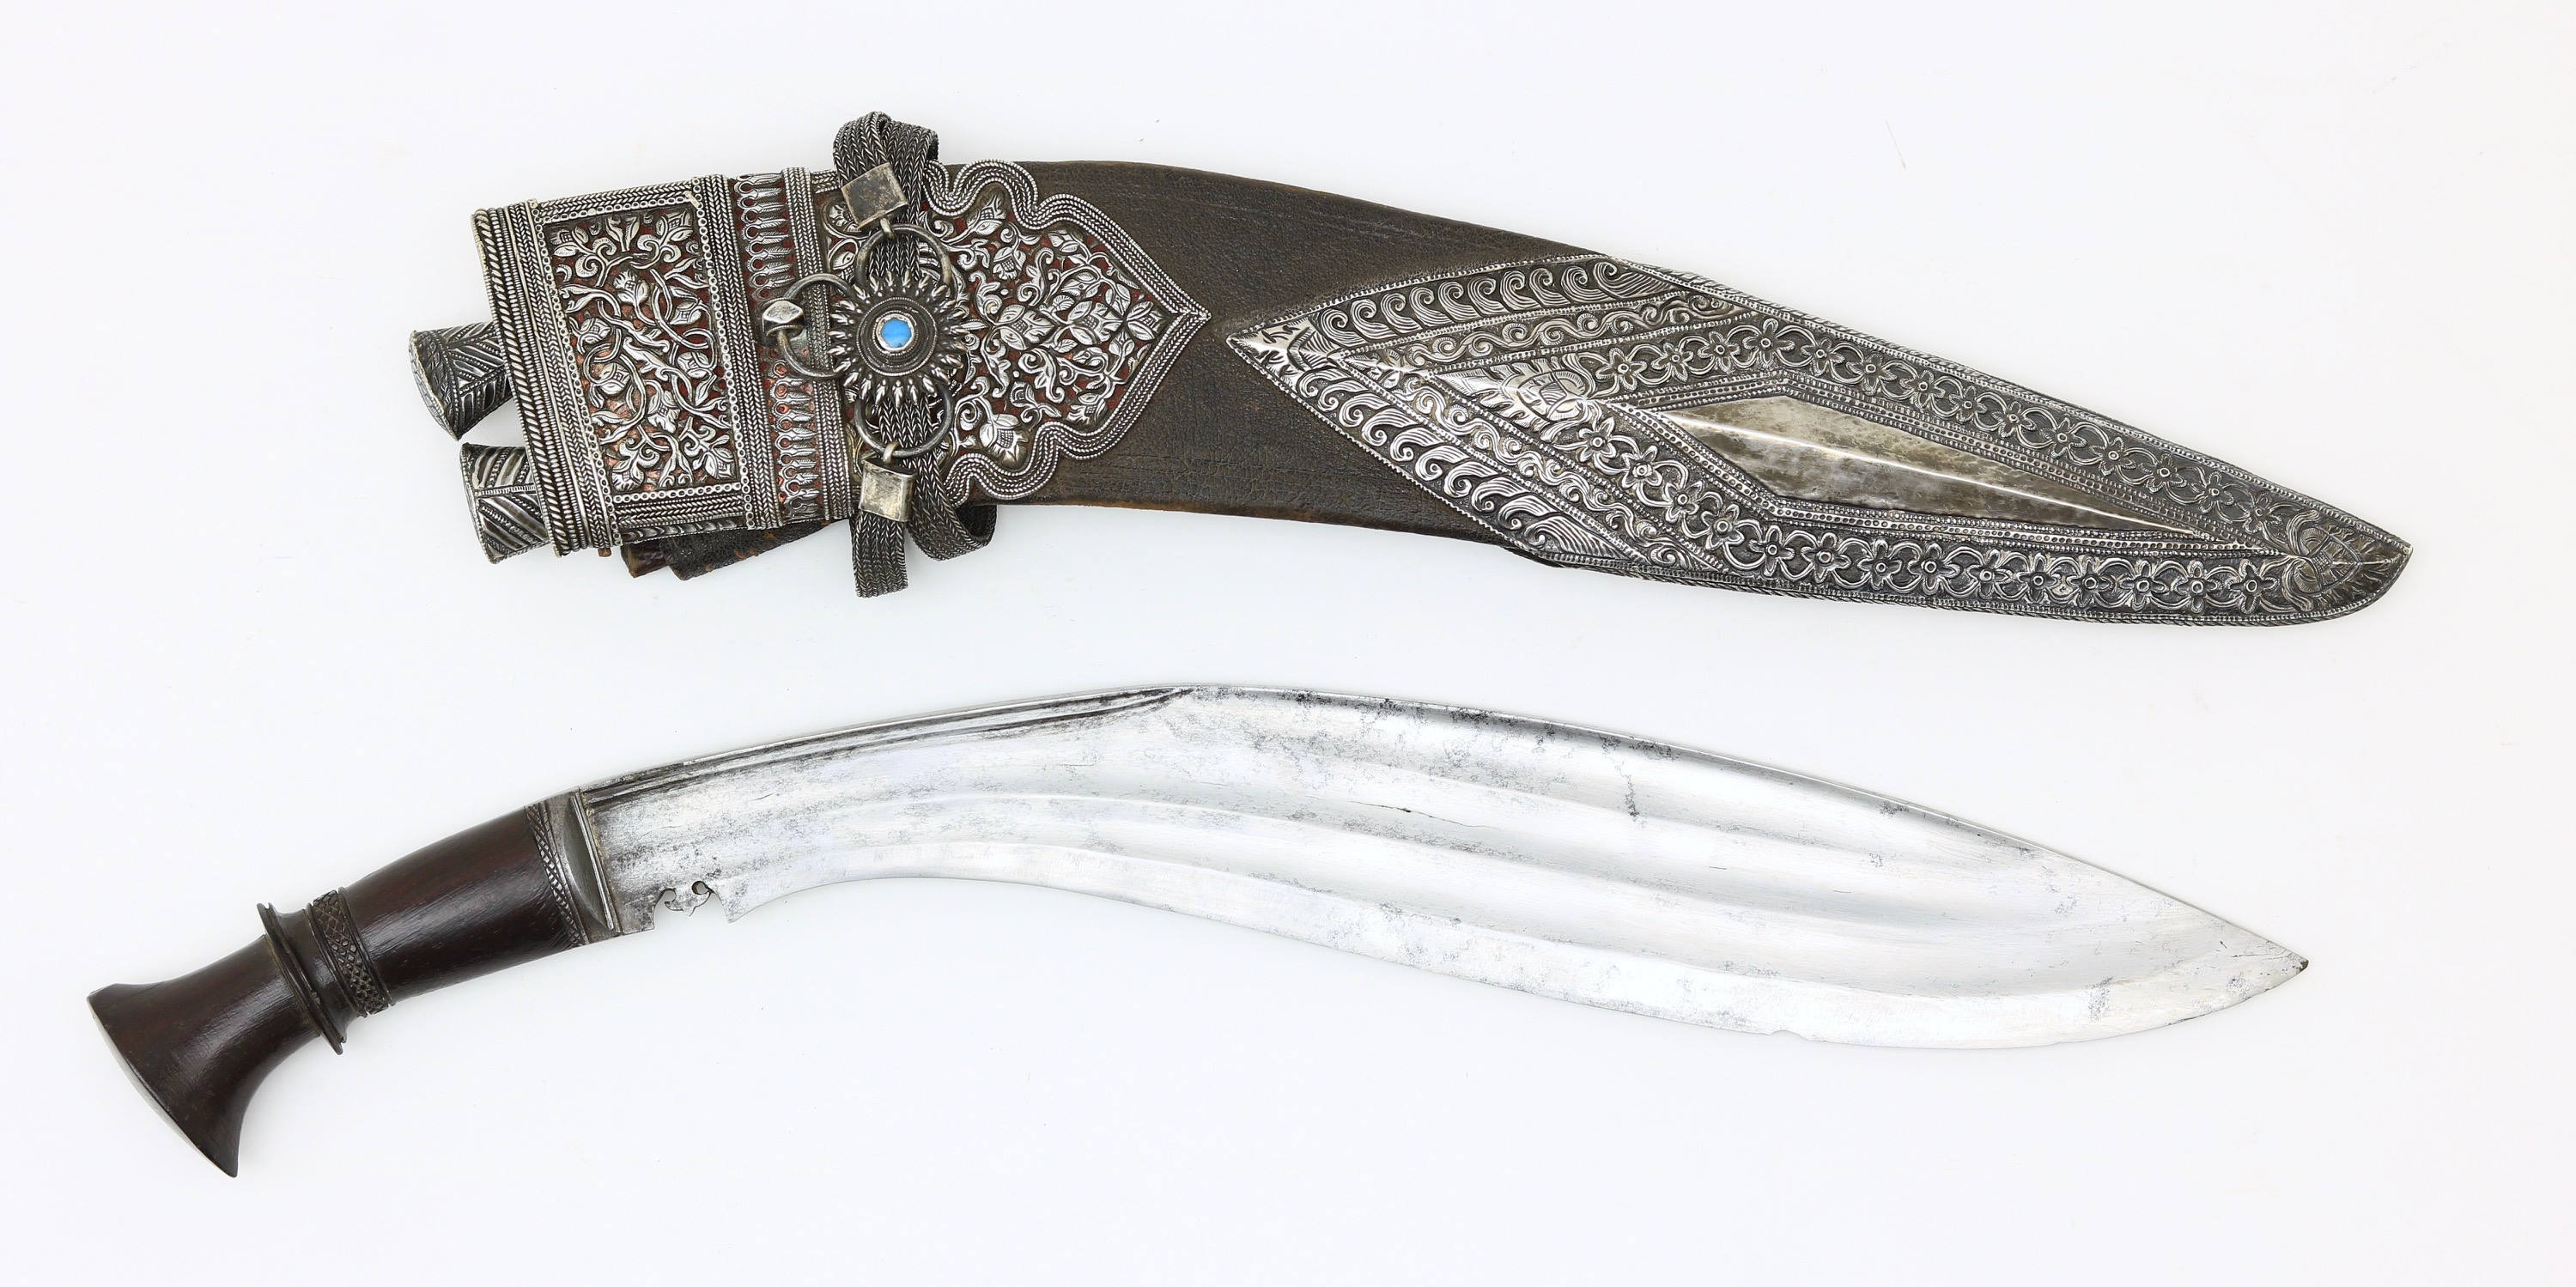 A khukuri of the 19th century